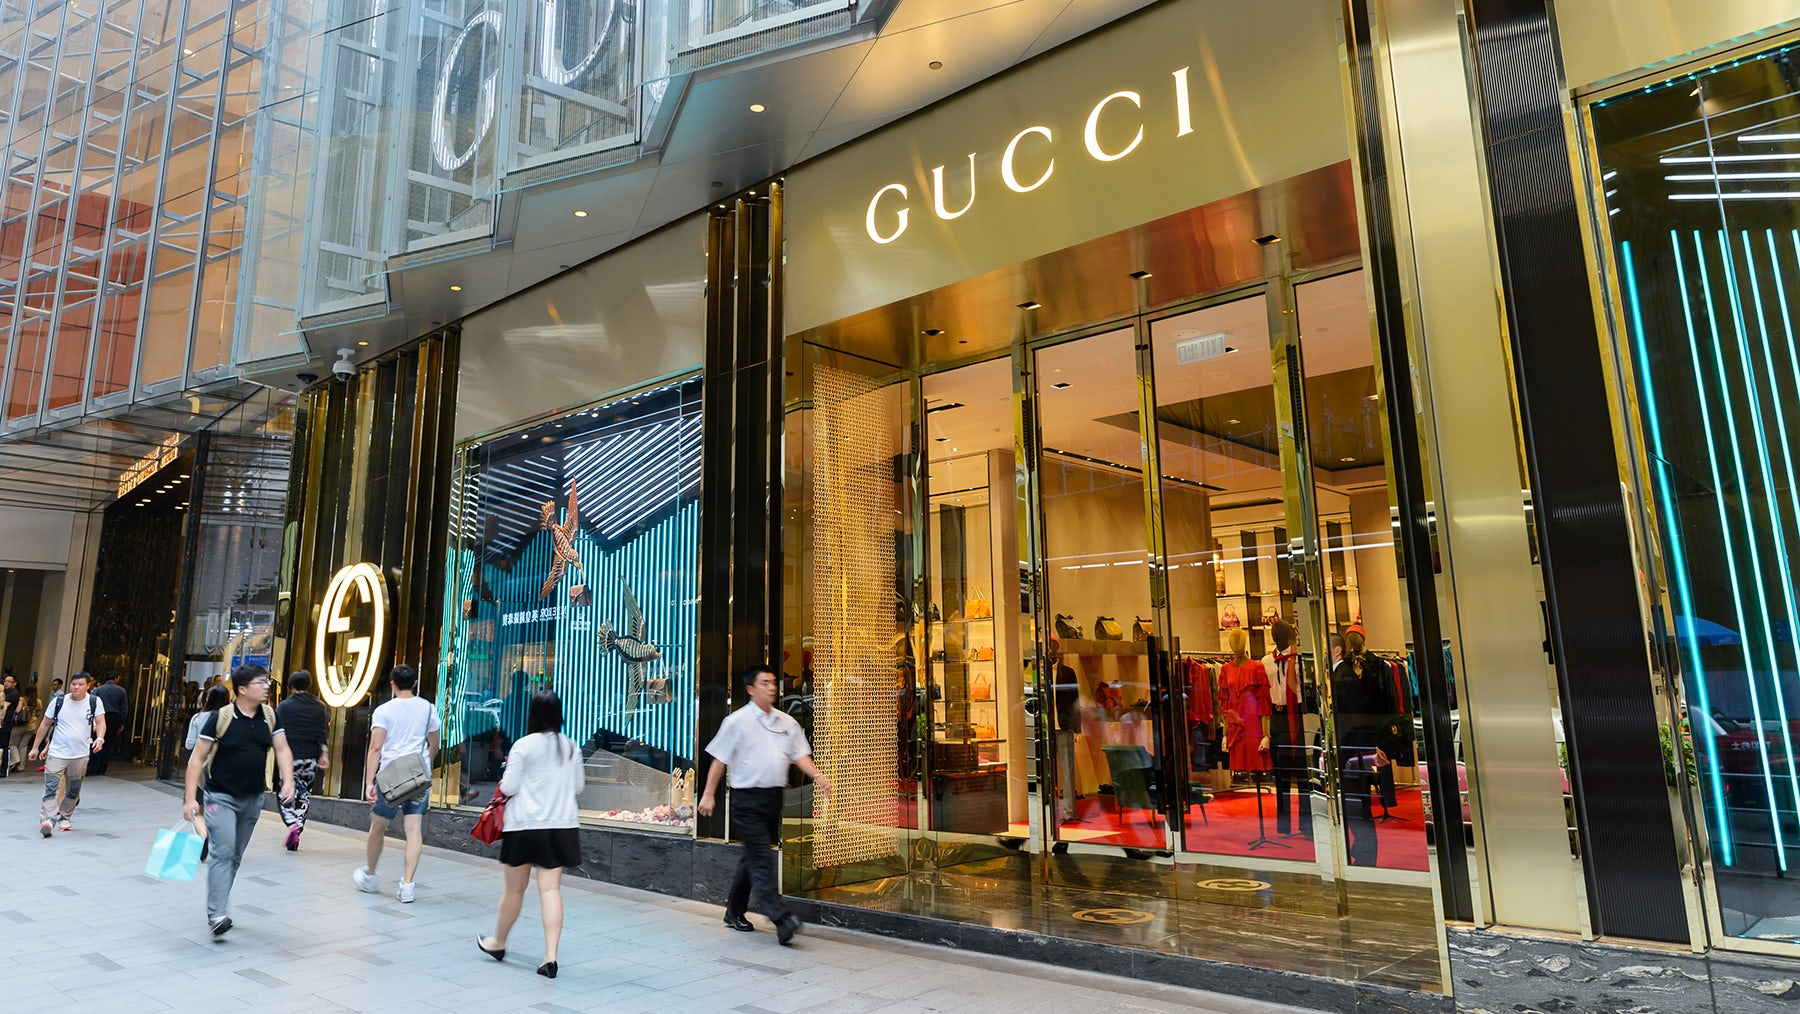 A Gucci store in China | Source: Shutterstock